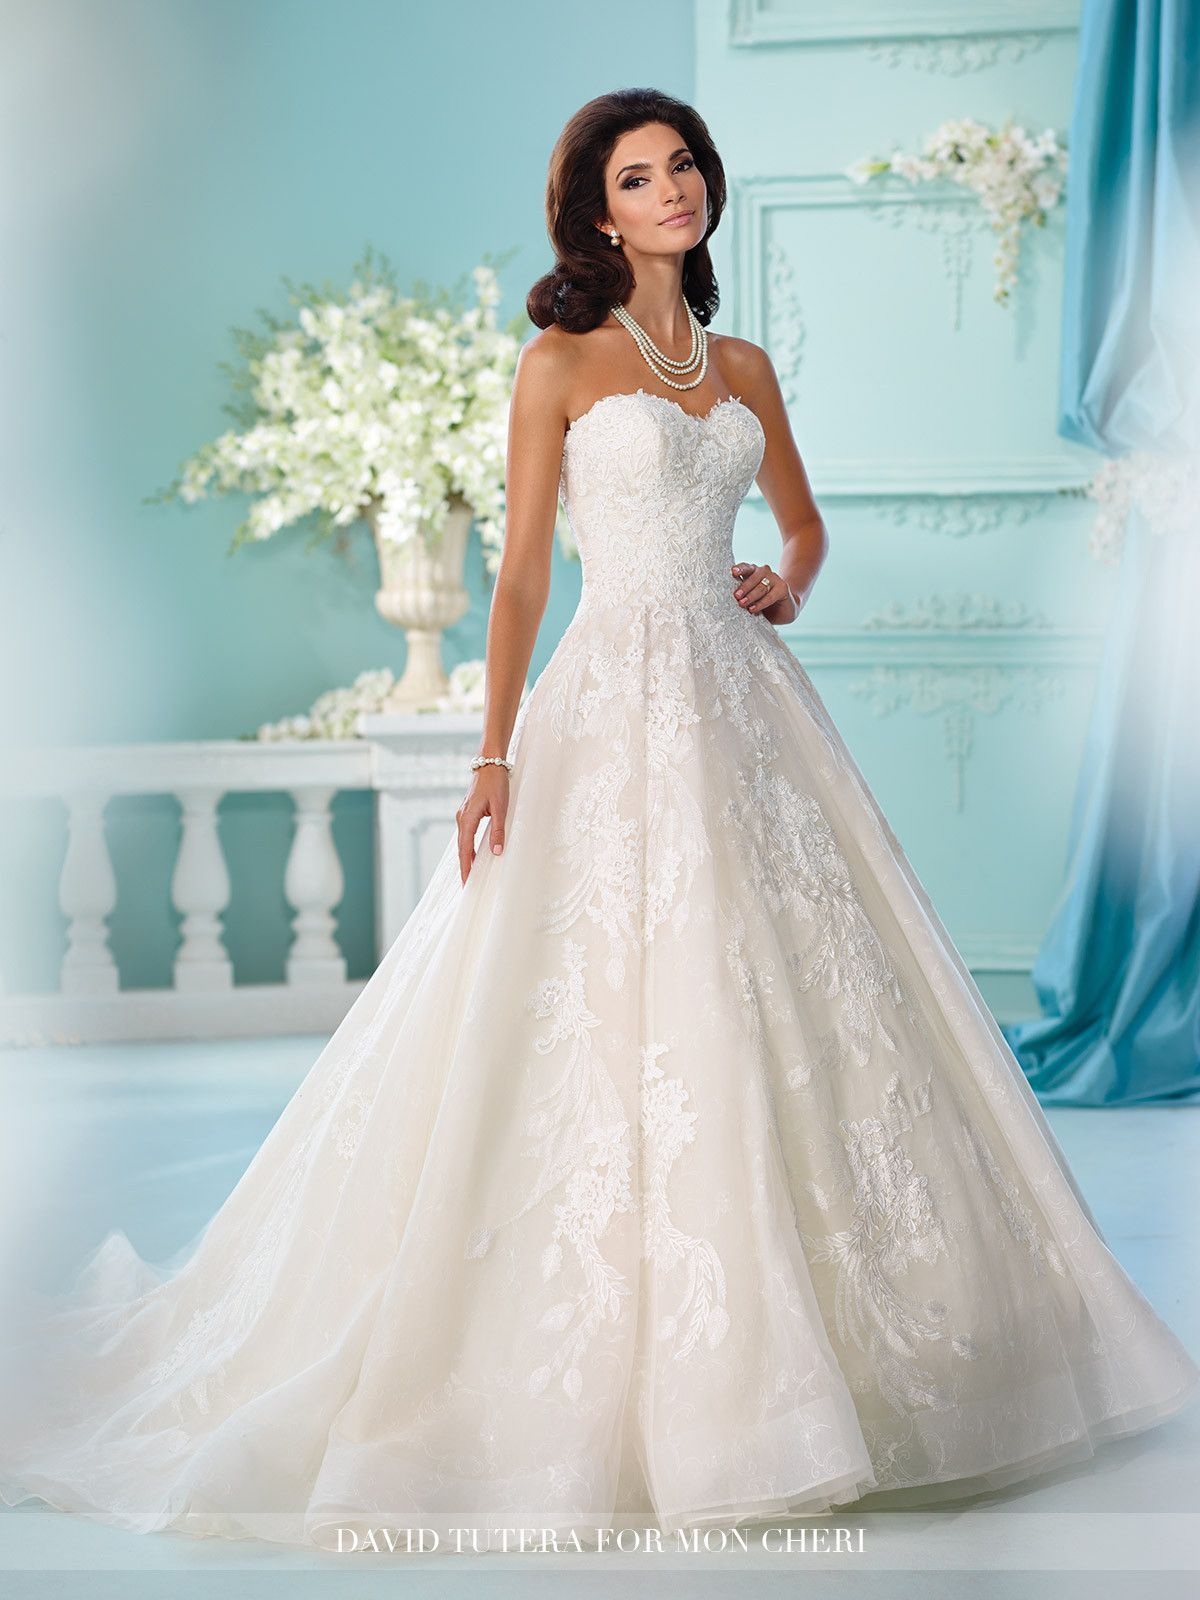 David Tutera - Serenity - 216255 - All Dressed Up, Bridal Gown | De ...